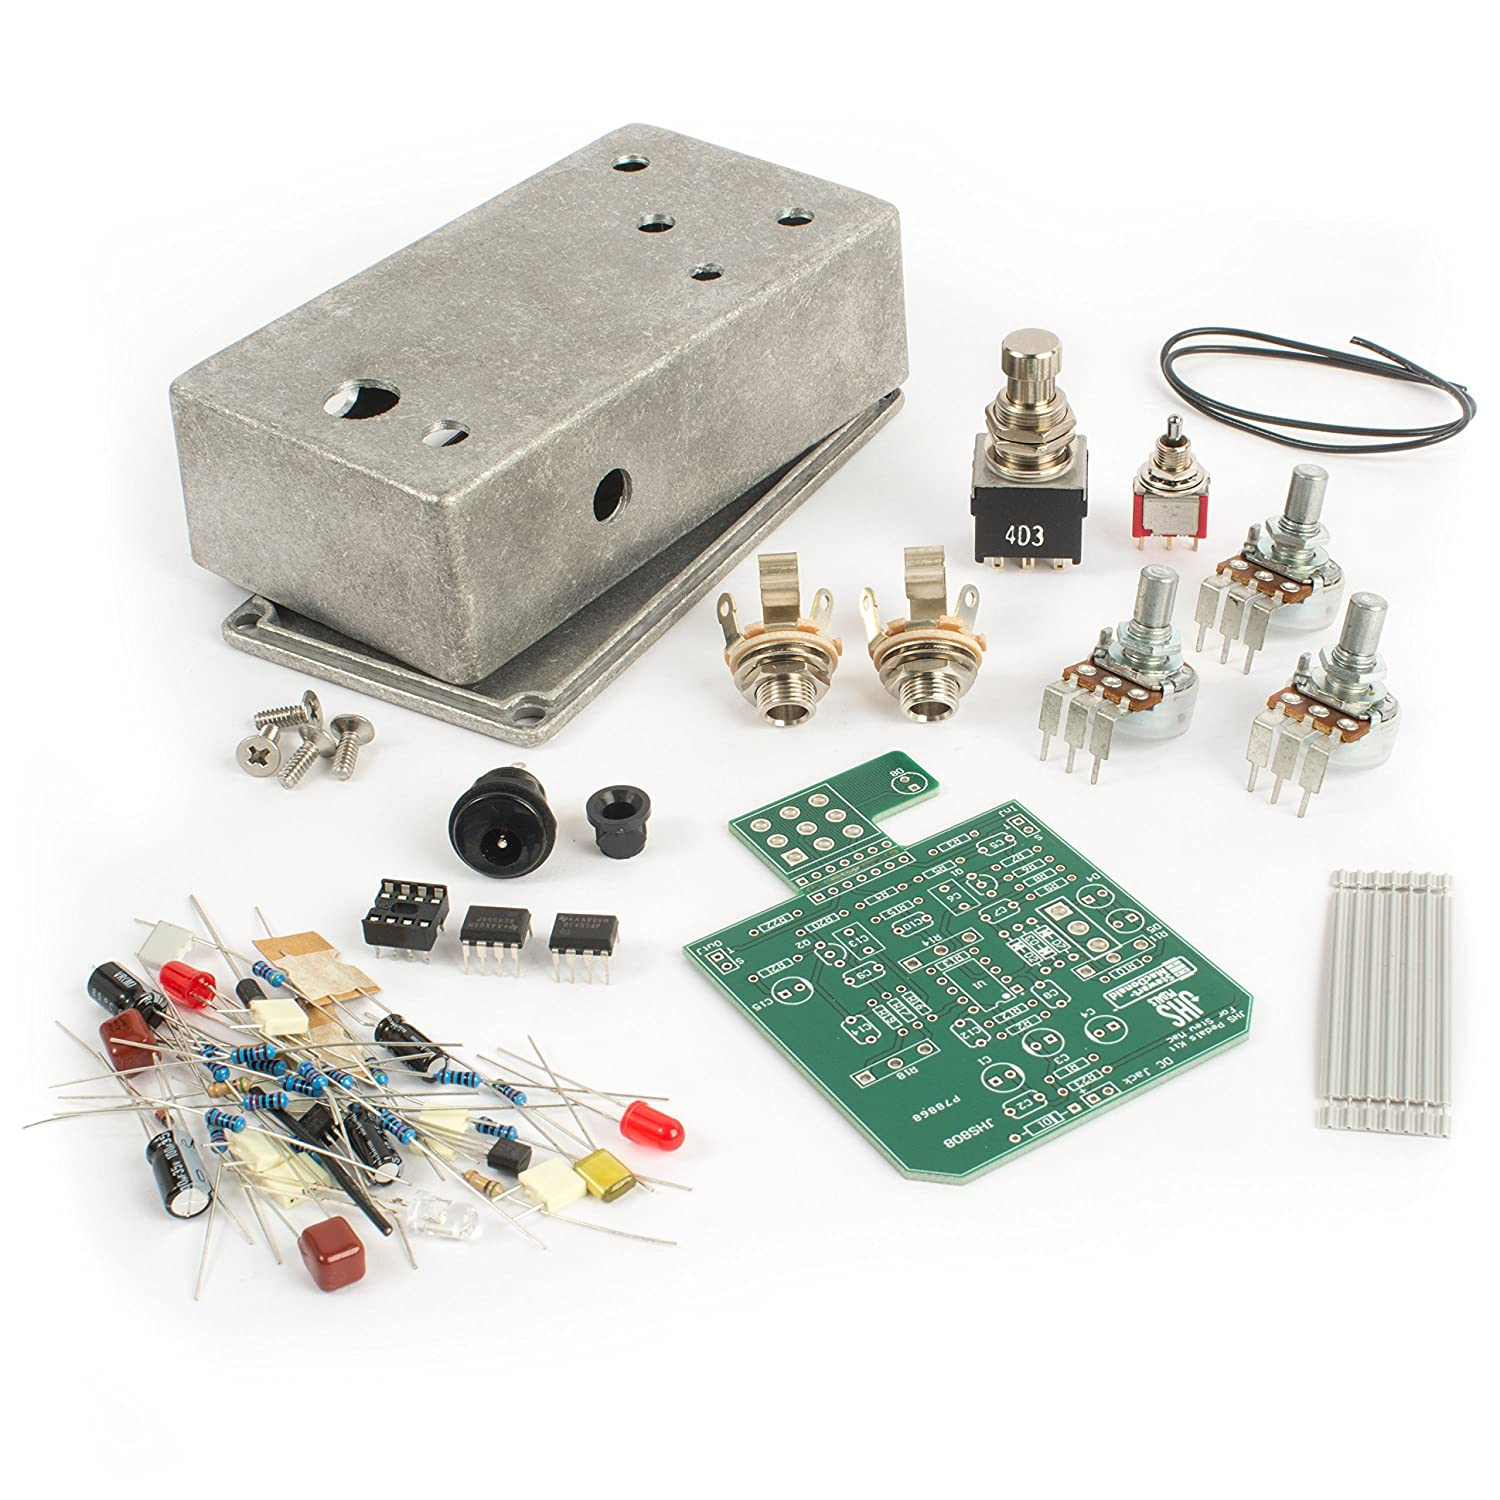 Jhs All American Distortion Diy Pedal Kit Musical Circuit Board On Vintage Cigar Box 808 Overdrive